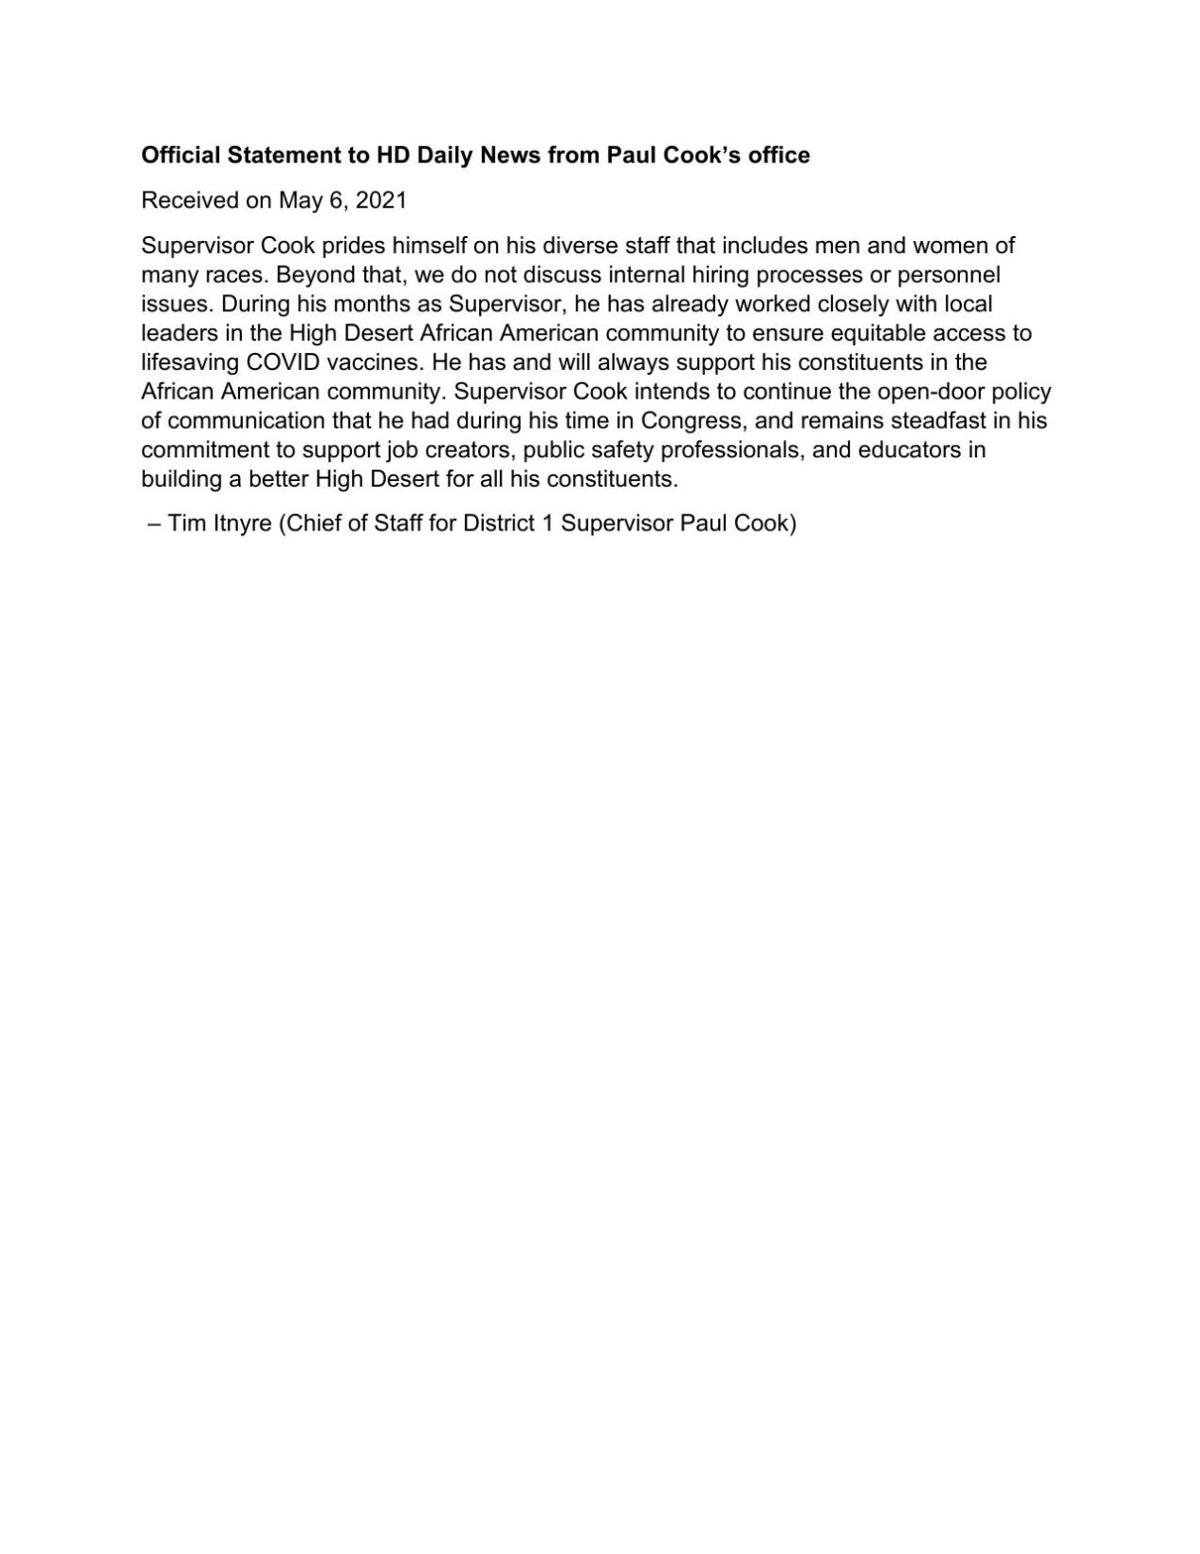 FILE: Paul Cook statement on racial equity